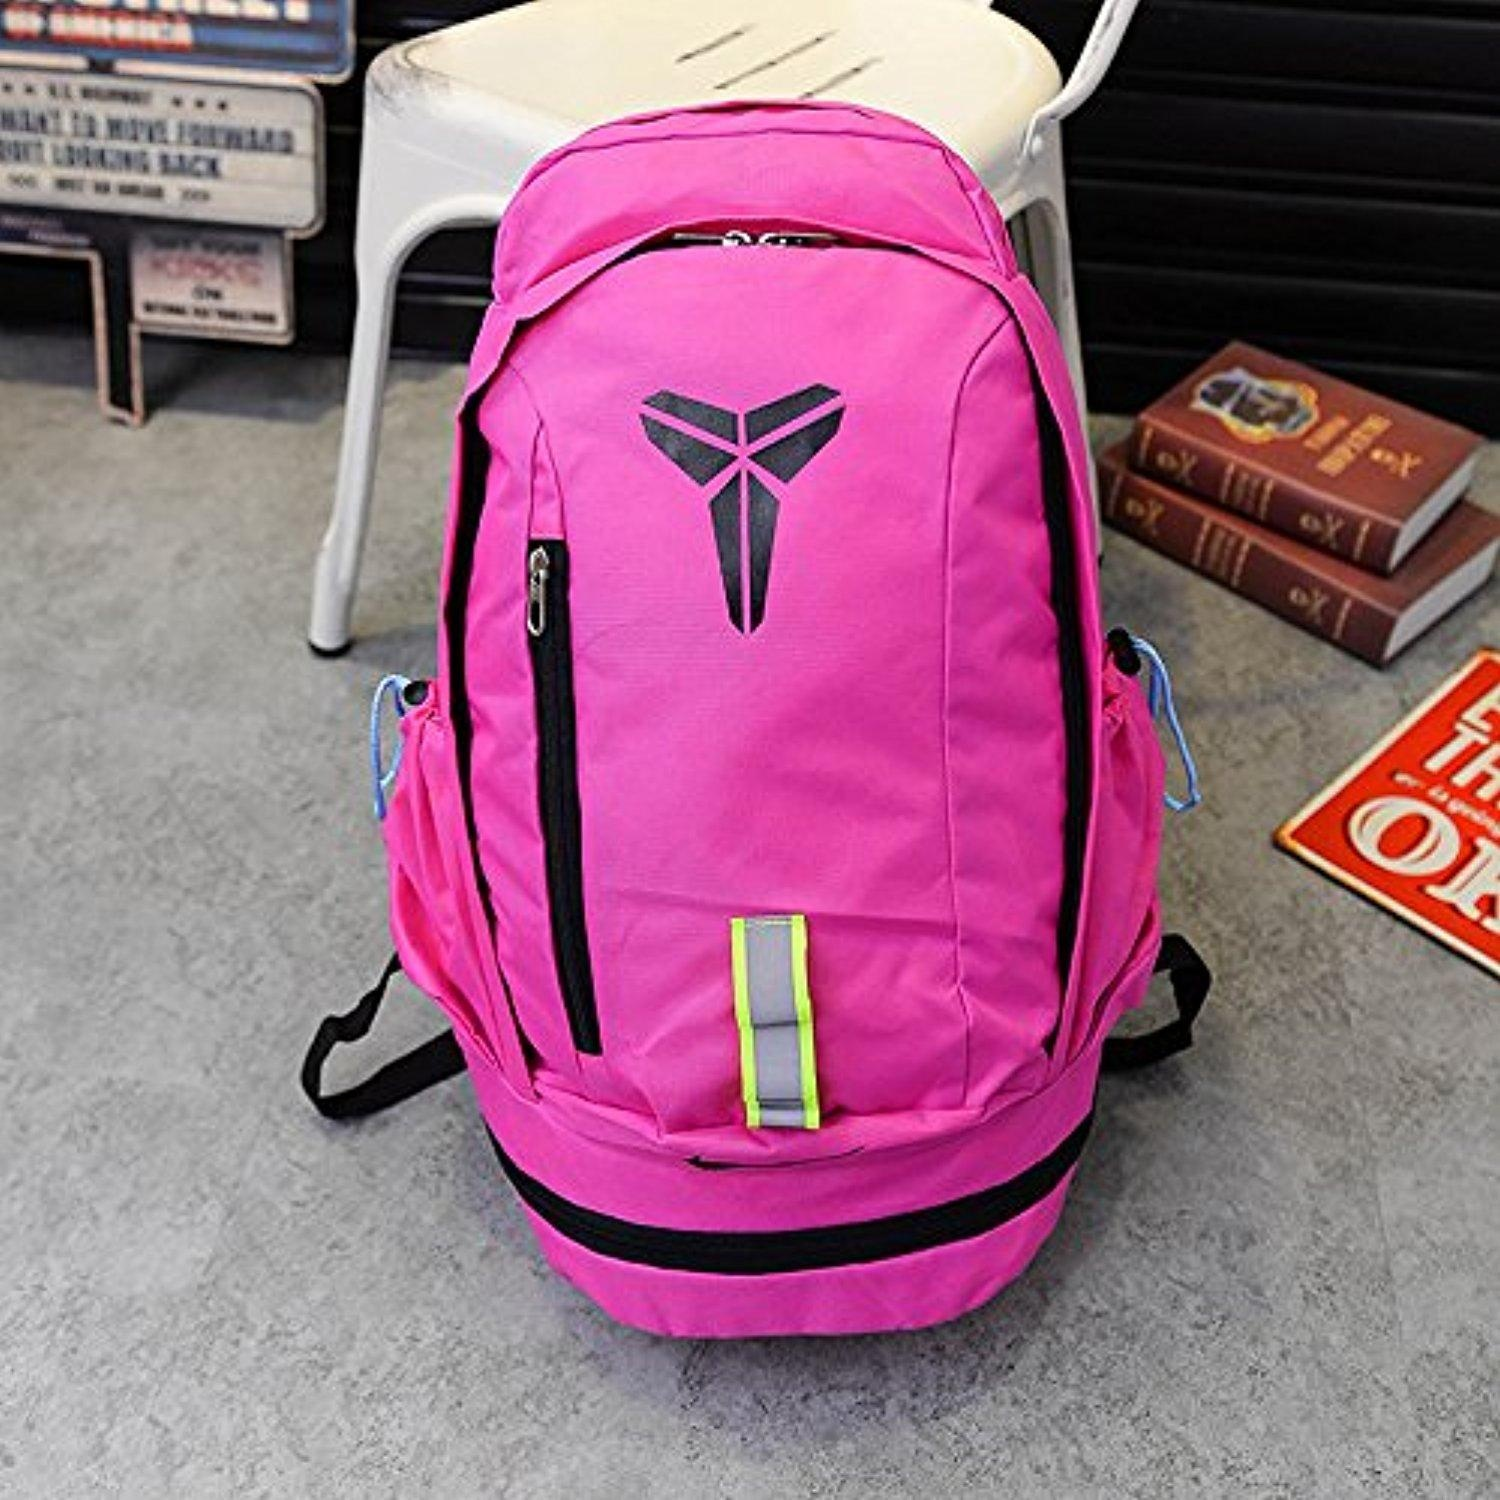 5f3634d6612e Online Store  Nike Kobe Mamba Basketball Backpack Bag Pink